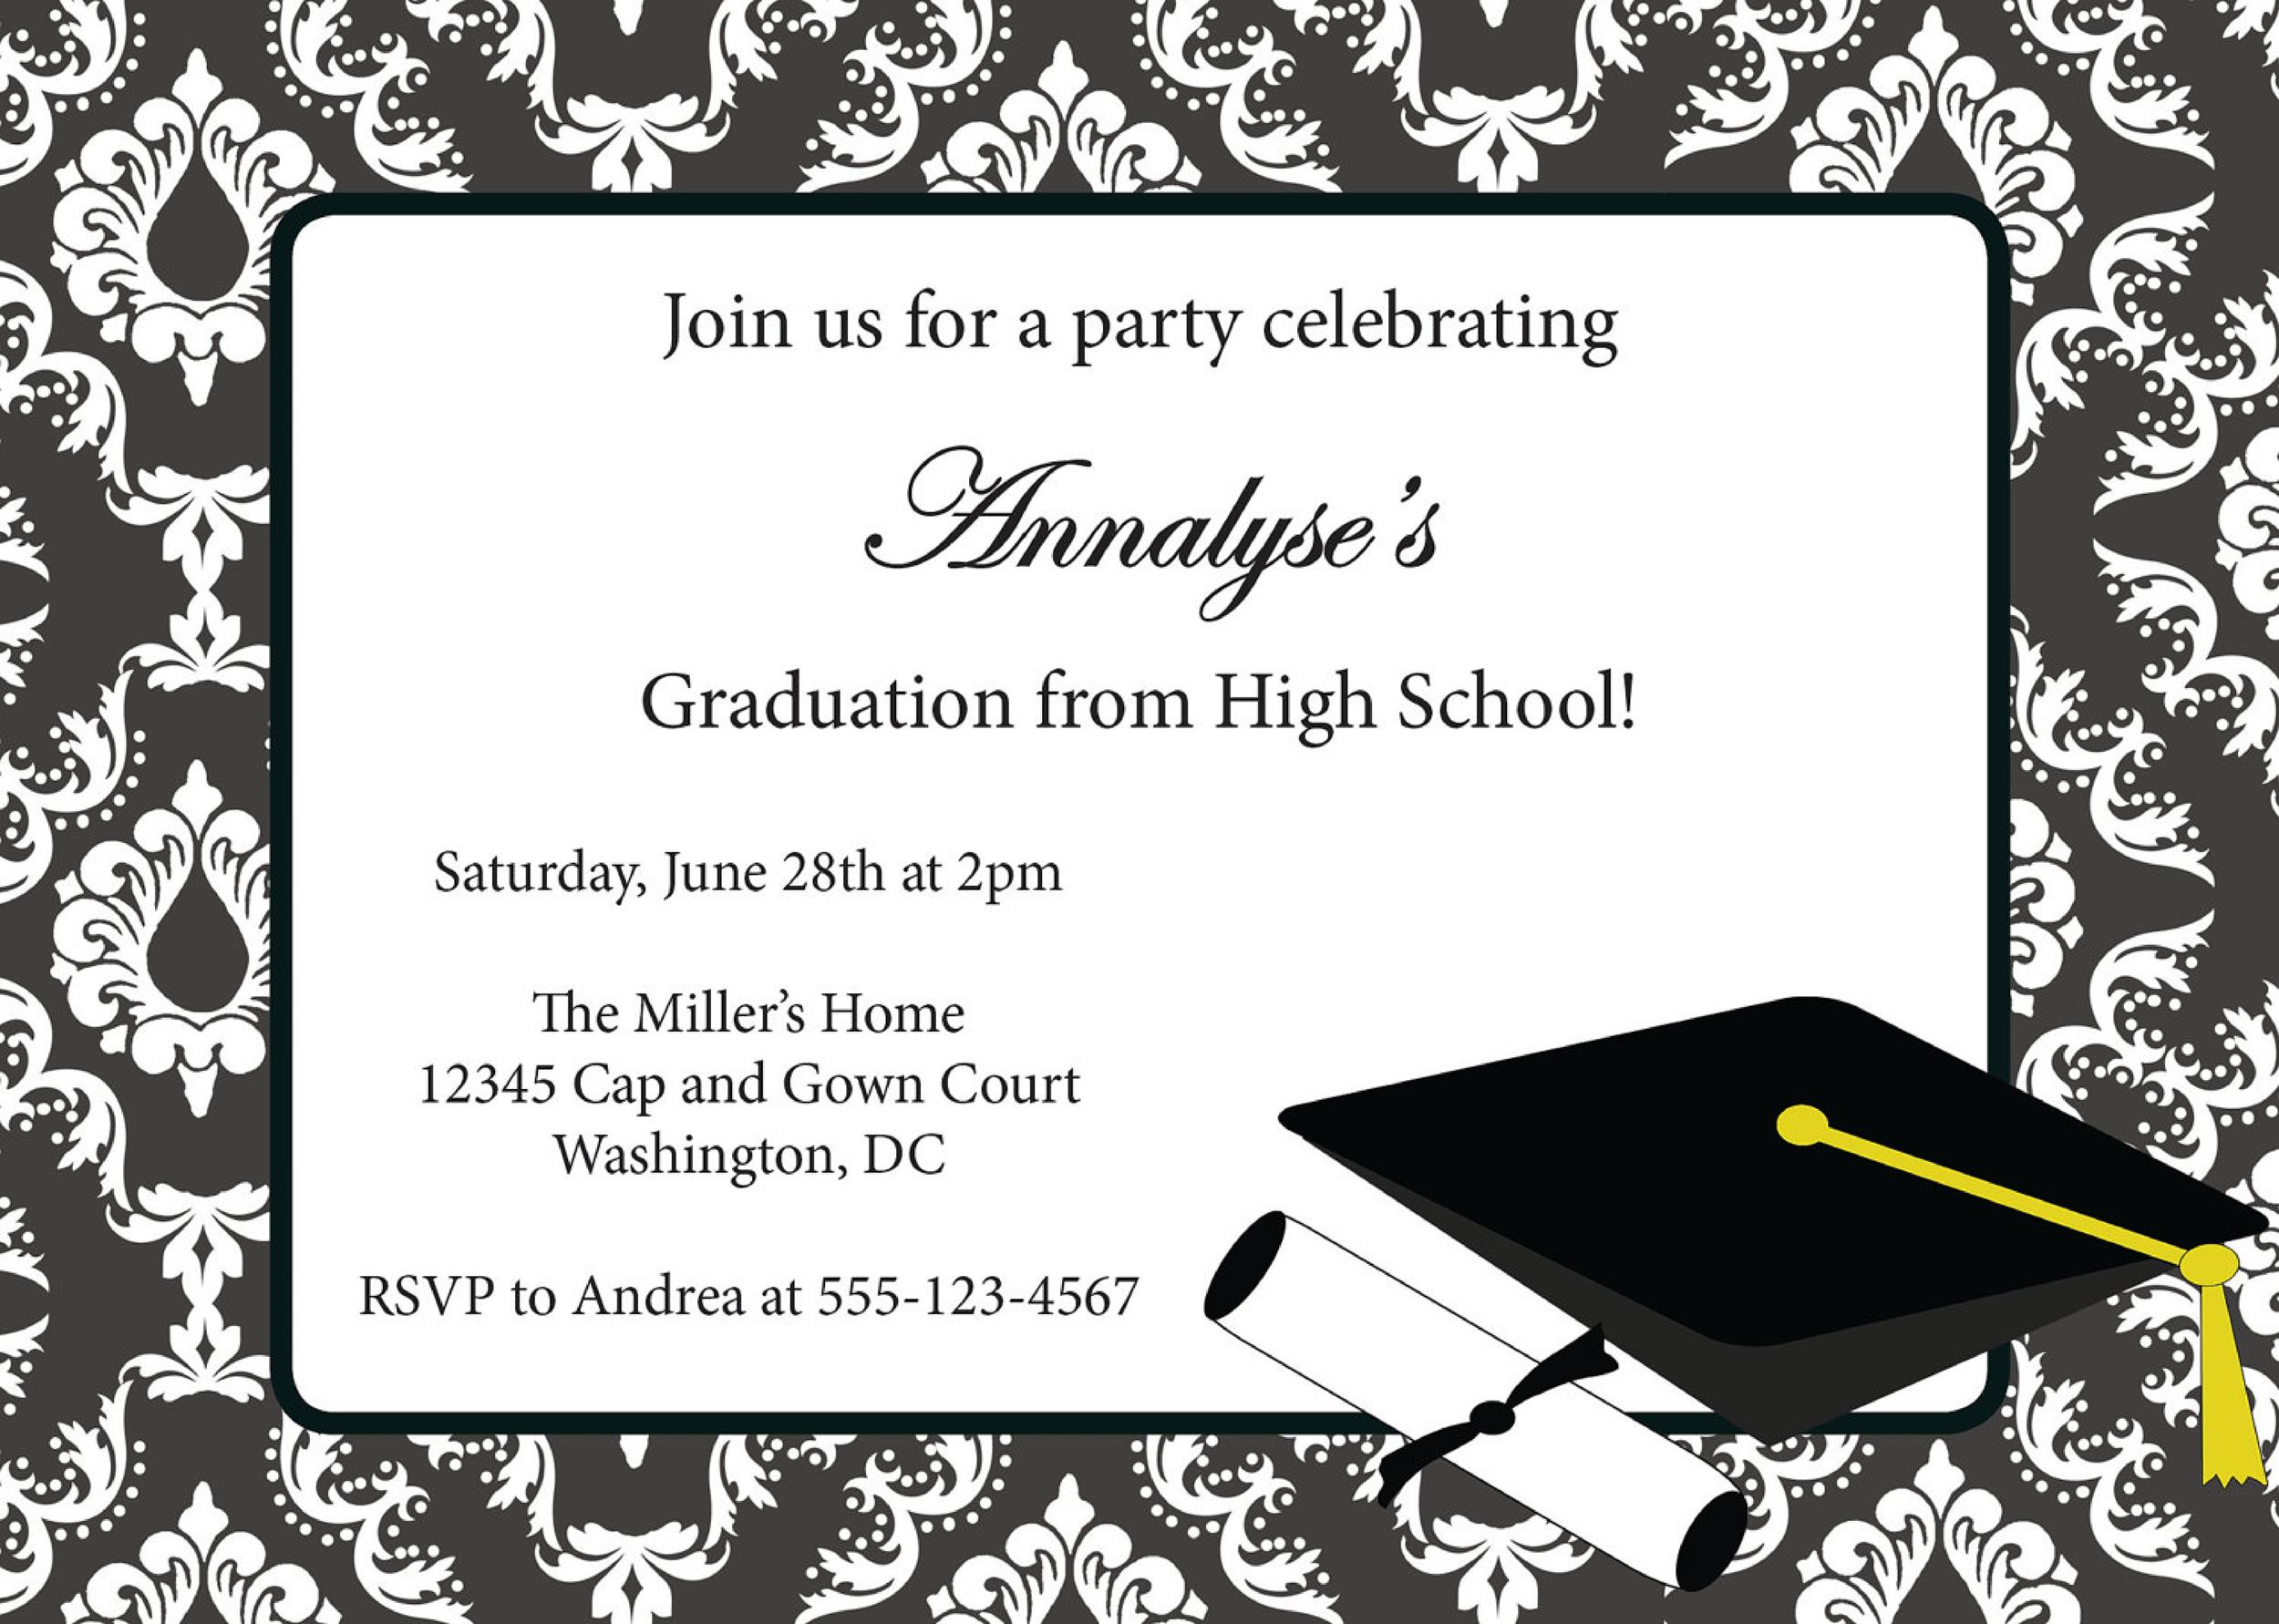 40+ FREE Graduation Invitation Templates - Template Lab - graduation invitation template